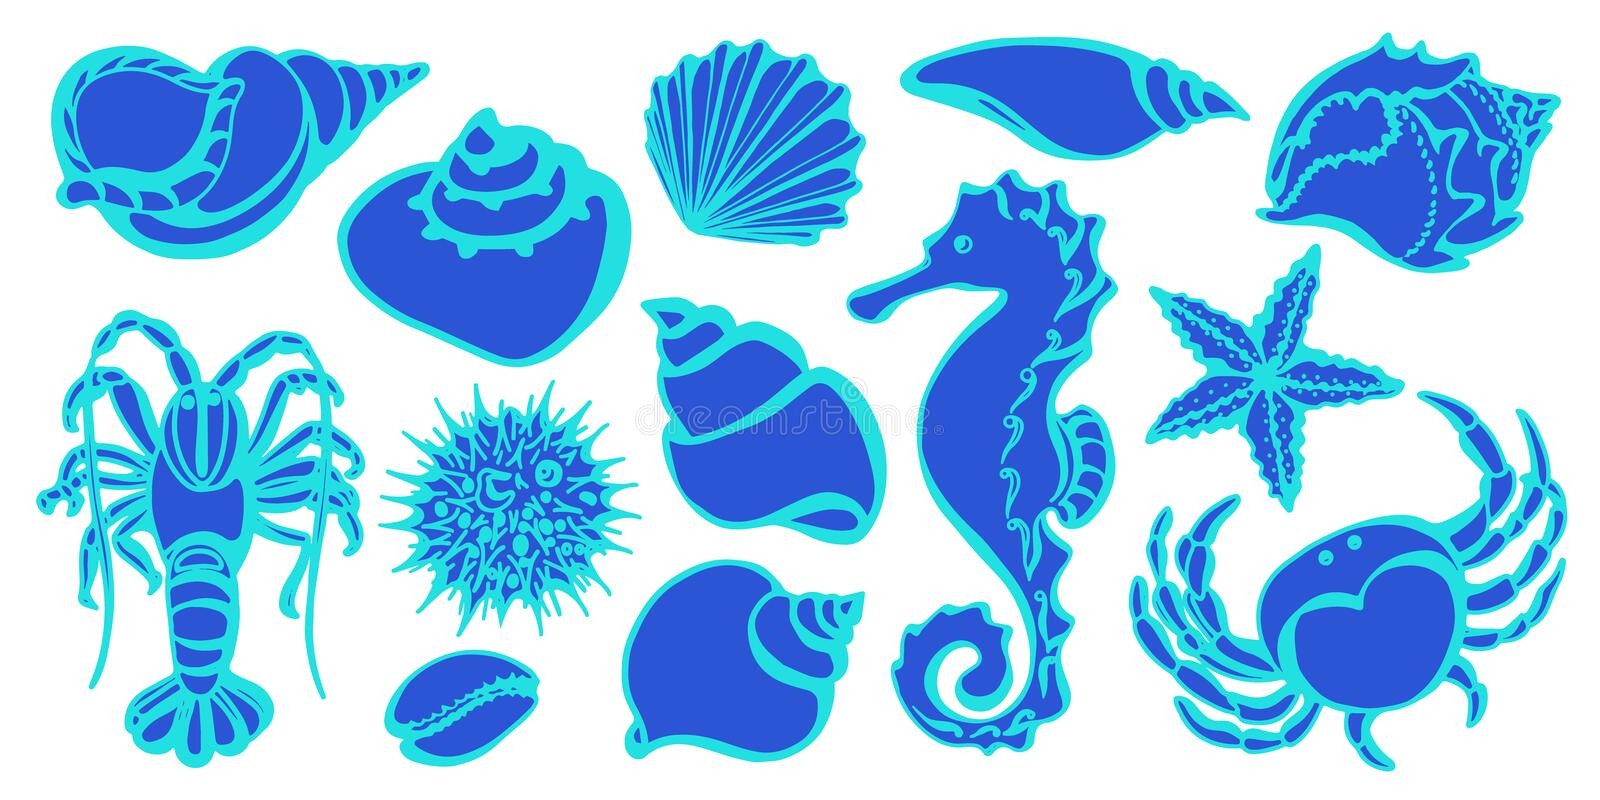 Sketch style vector. Marine collection. stock illustration